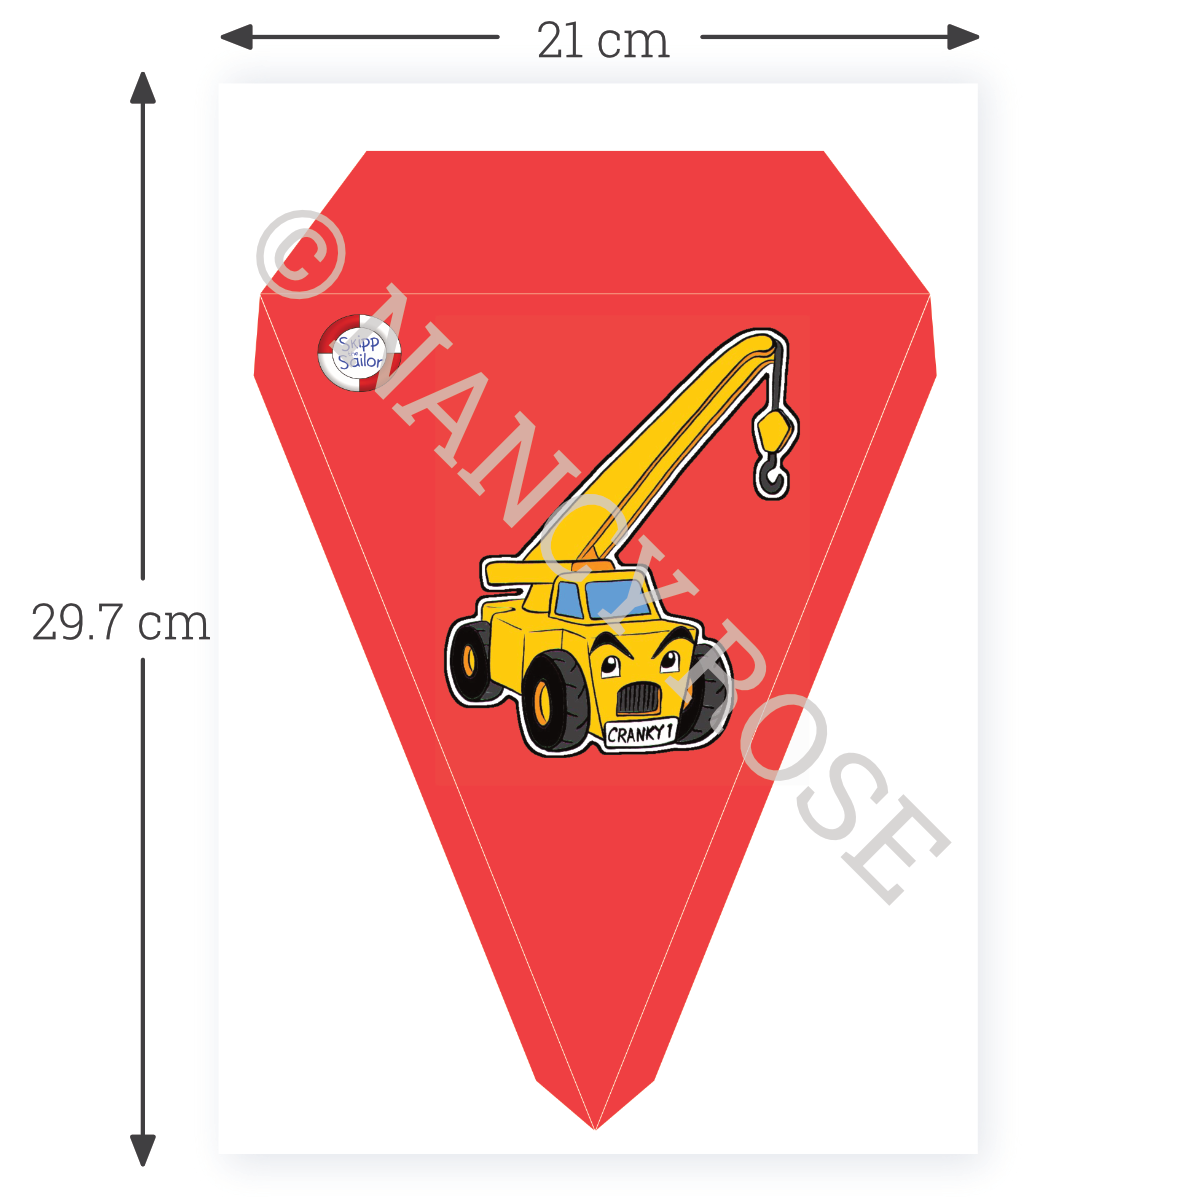 Bunting with scale bar photo